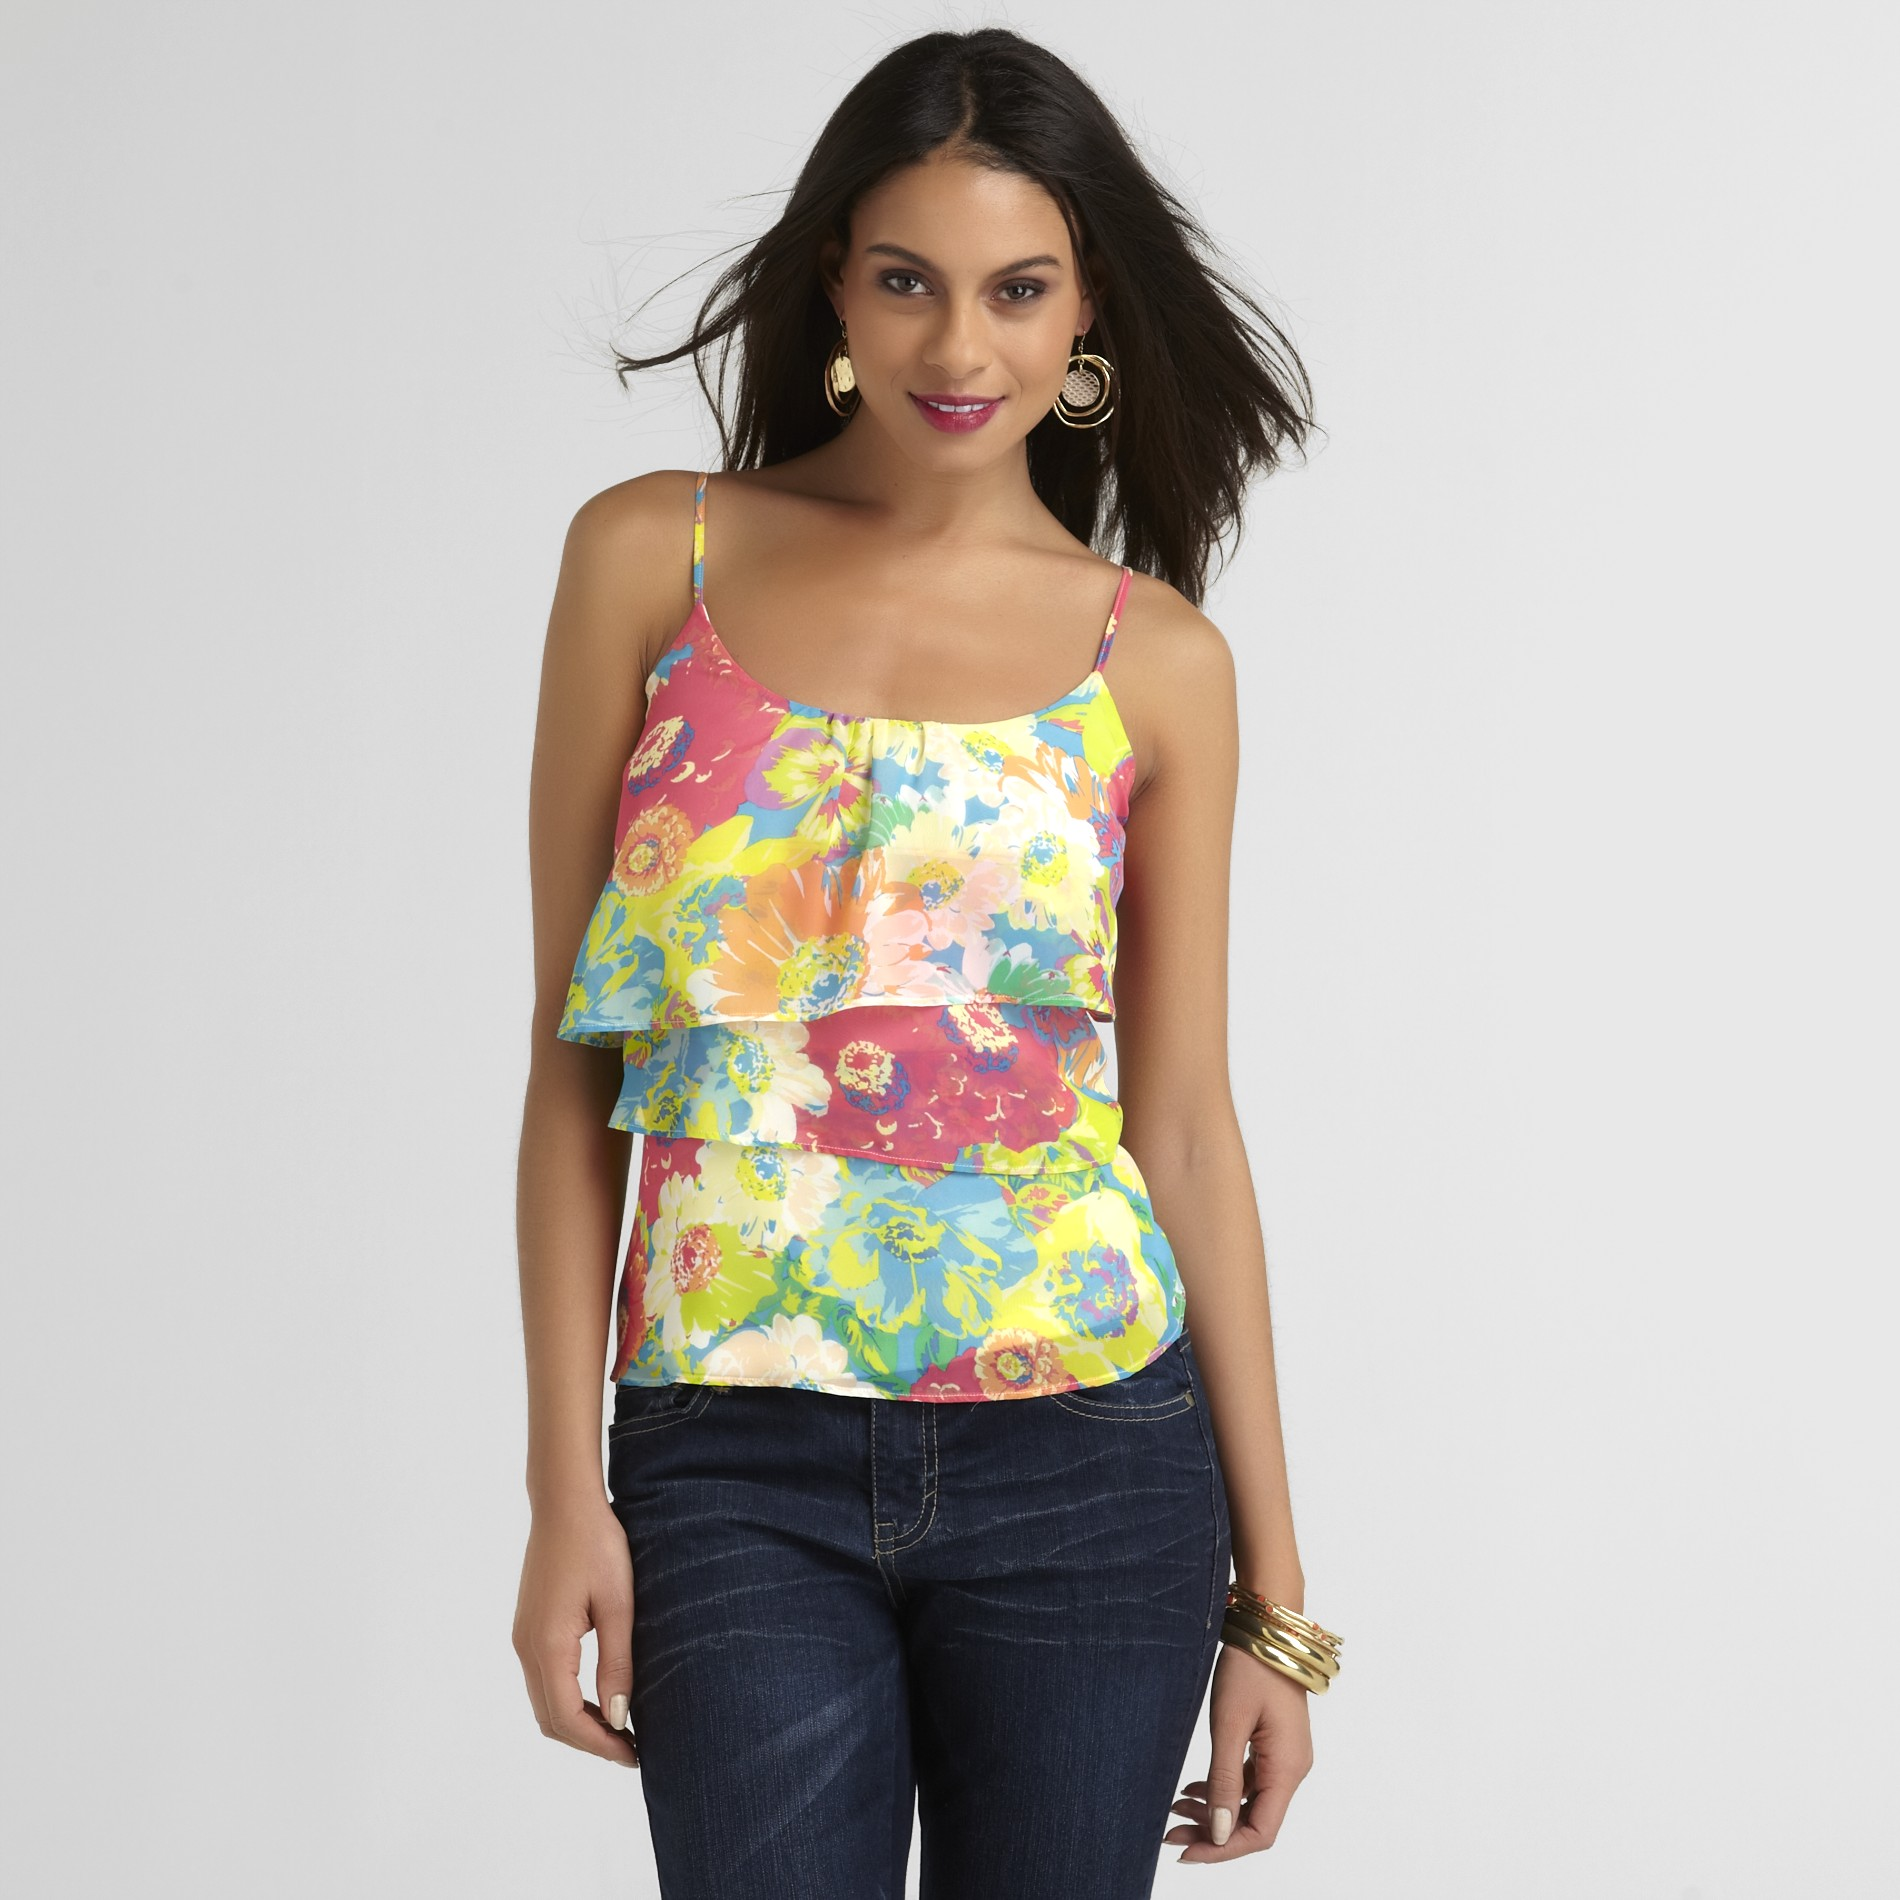 Cute Floral Top For Date Night